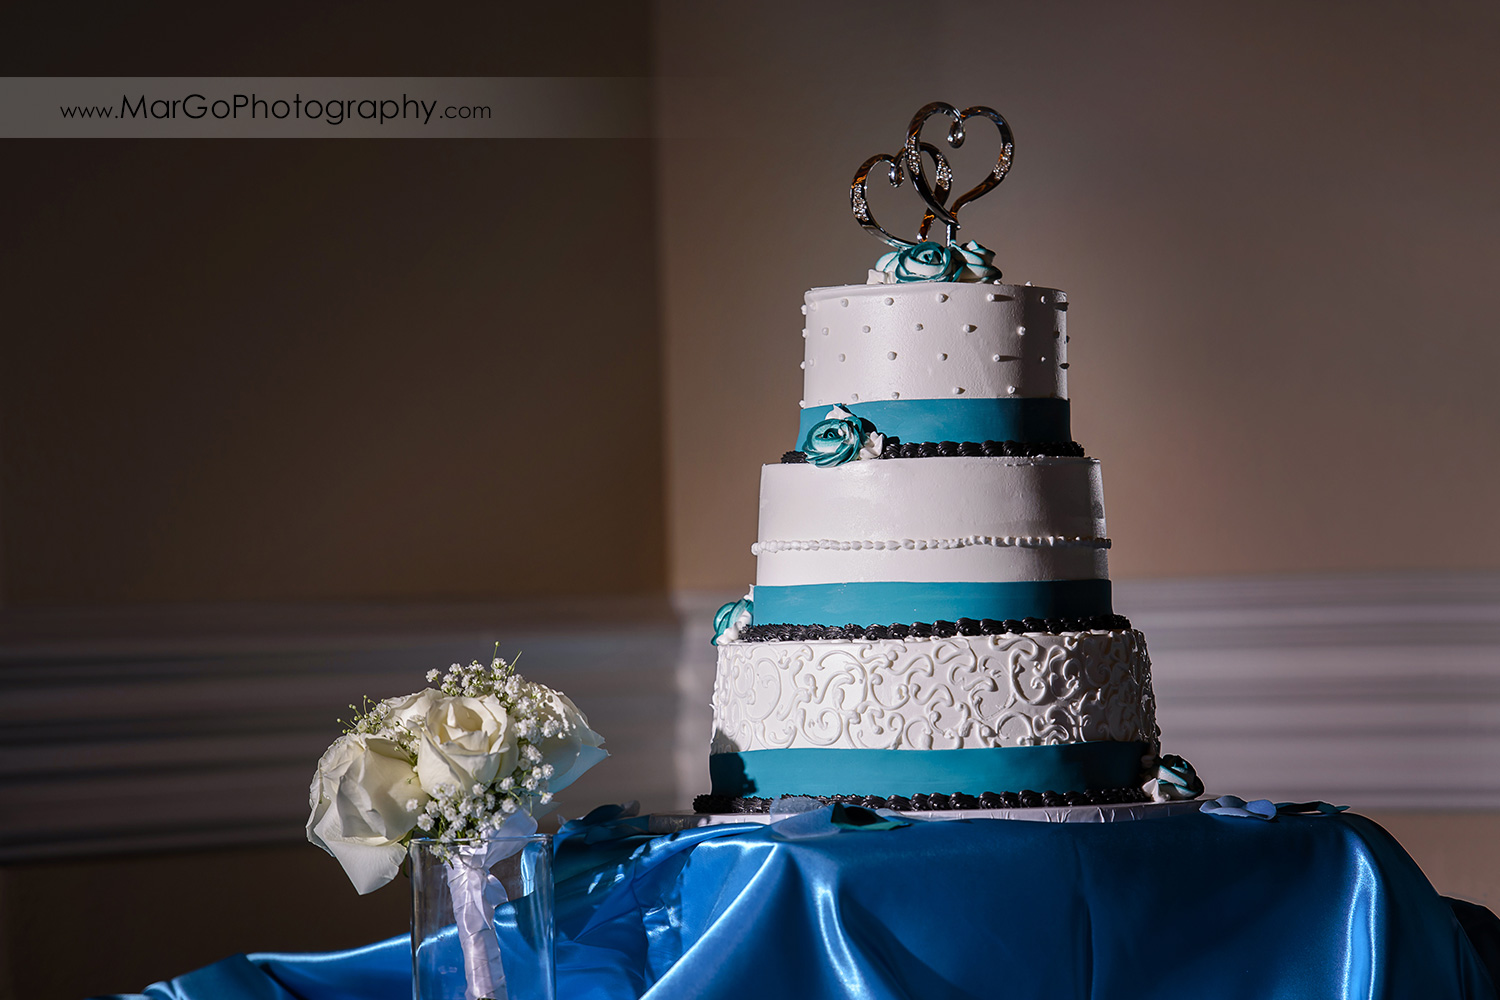 wedding cake at Wedgewood Wedding & Banquet Center in Brentwood